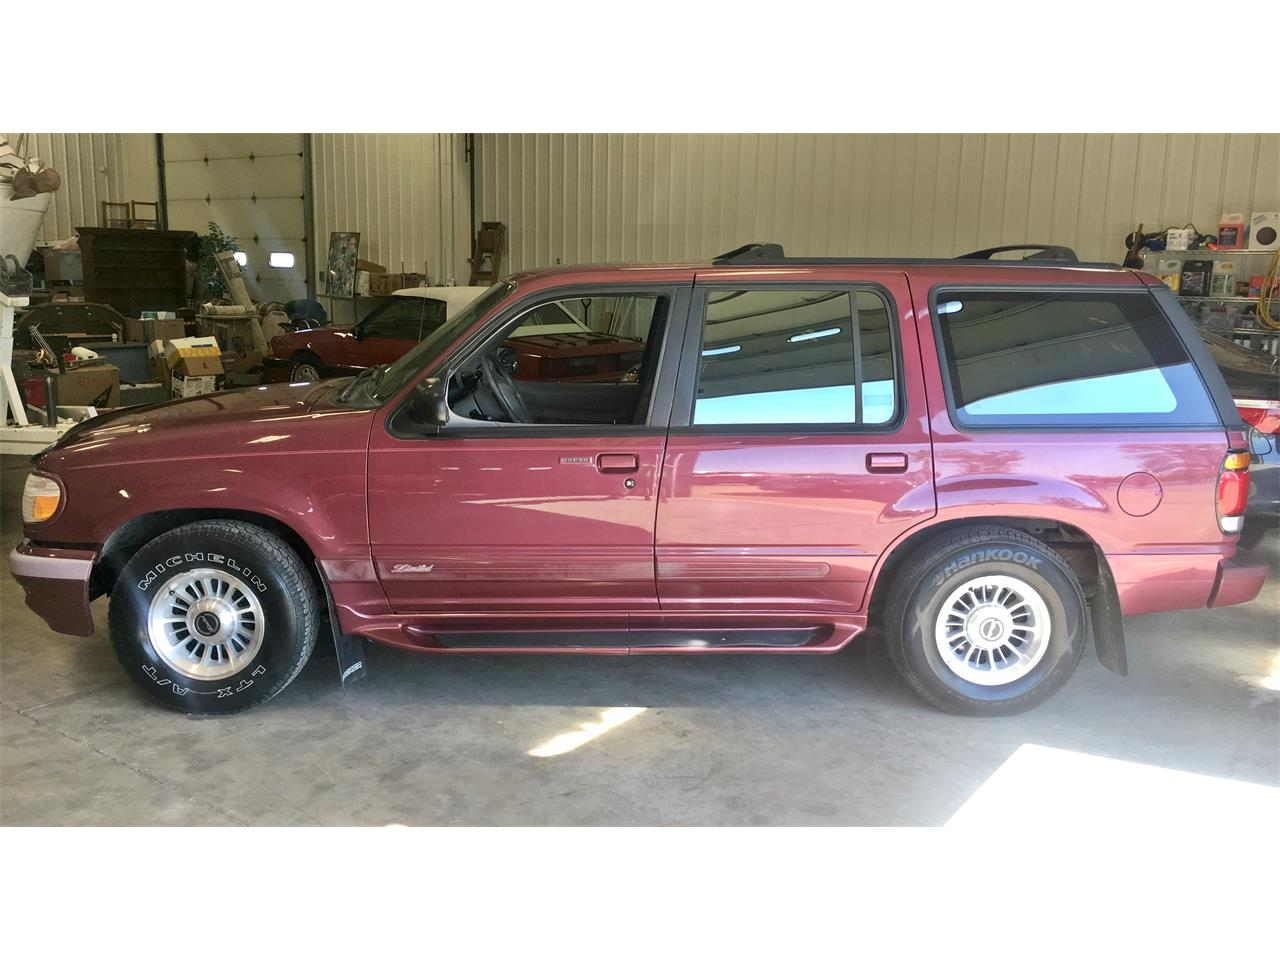 Large picture of 1996 ford explorer limited xlt lb32